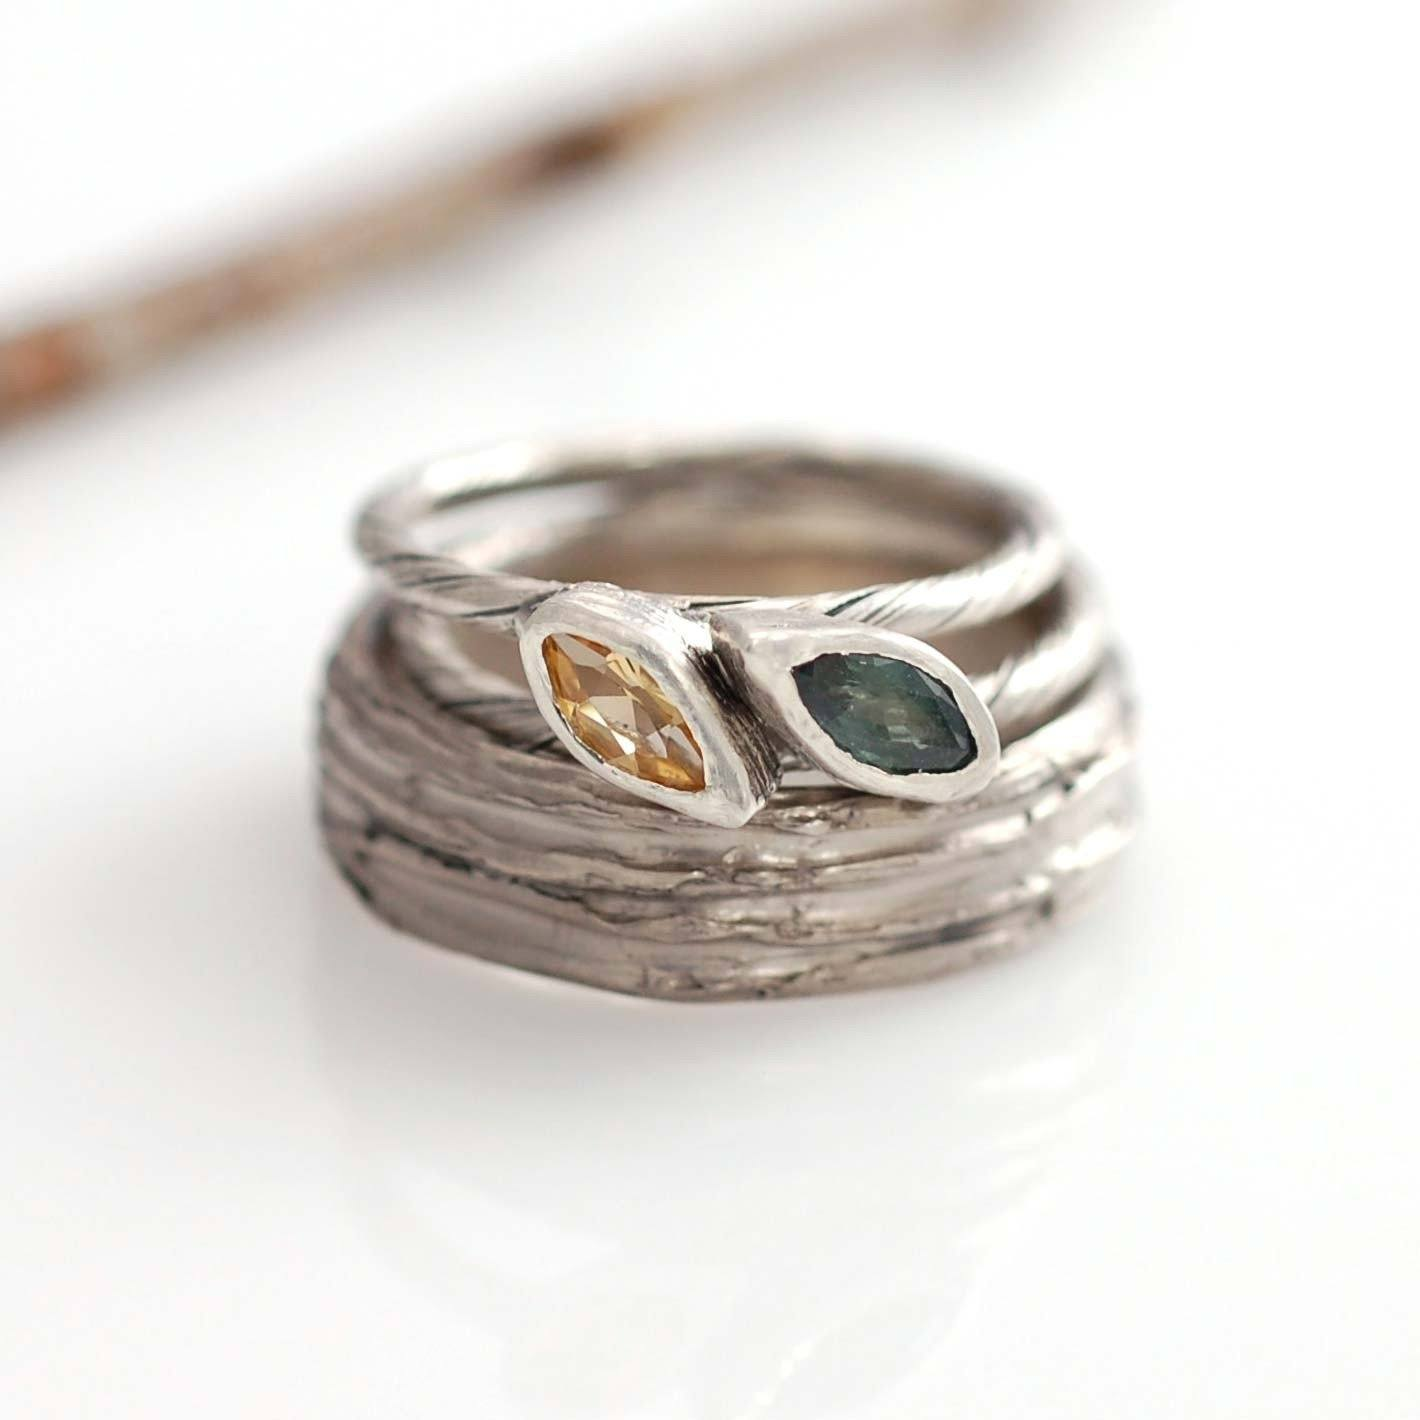 Custom Citrine and Green Sapphire Leaf Engagement Rings in Palladium White Gold - nature inspired rings by Beth Cyr